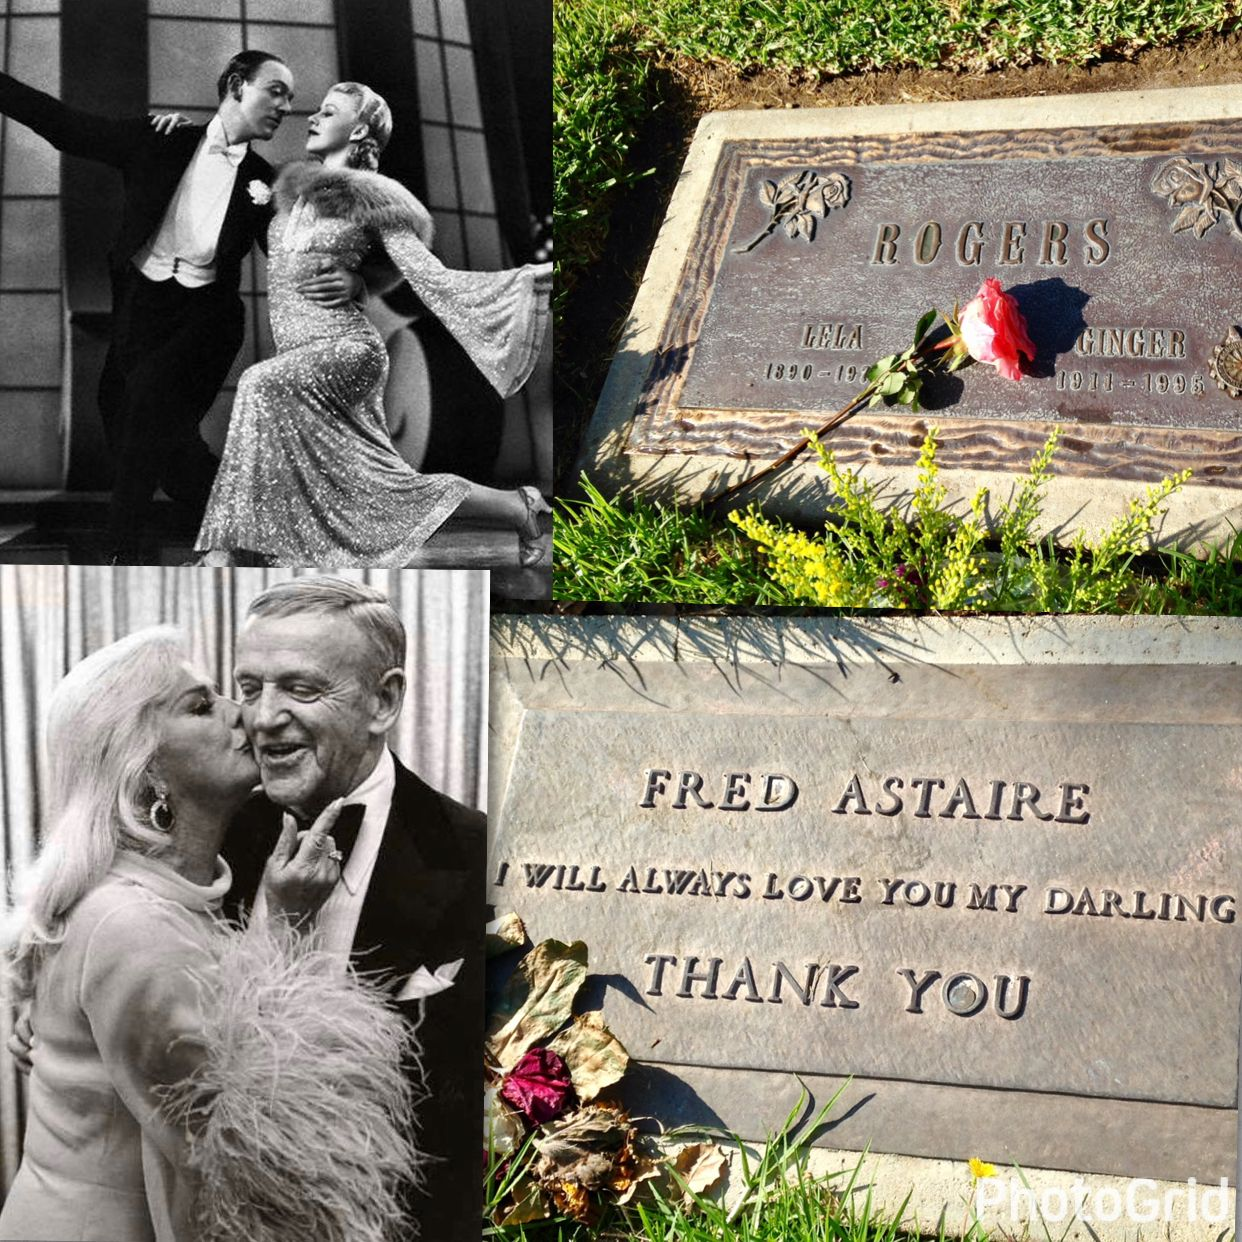 My Little Tribute To Rogers Astaire Visiting Oakwood Memorial Park Chatsworth Ca Tribute Memorial Park